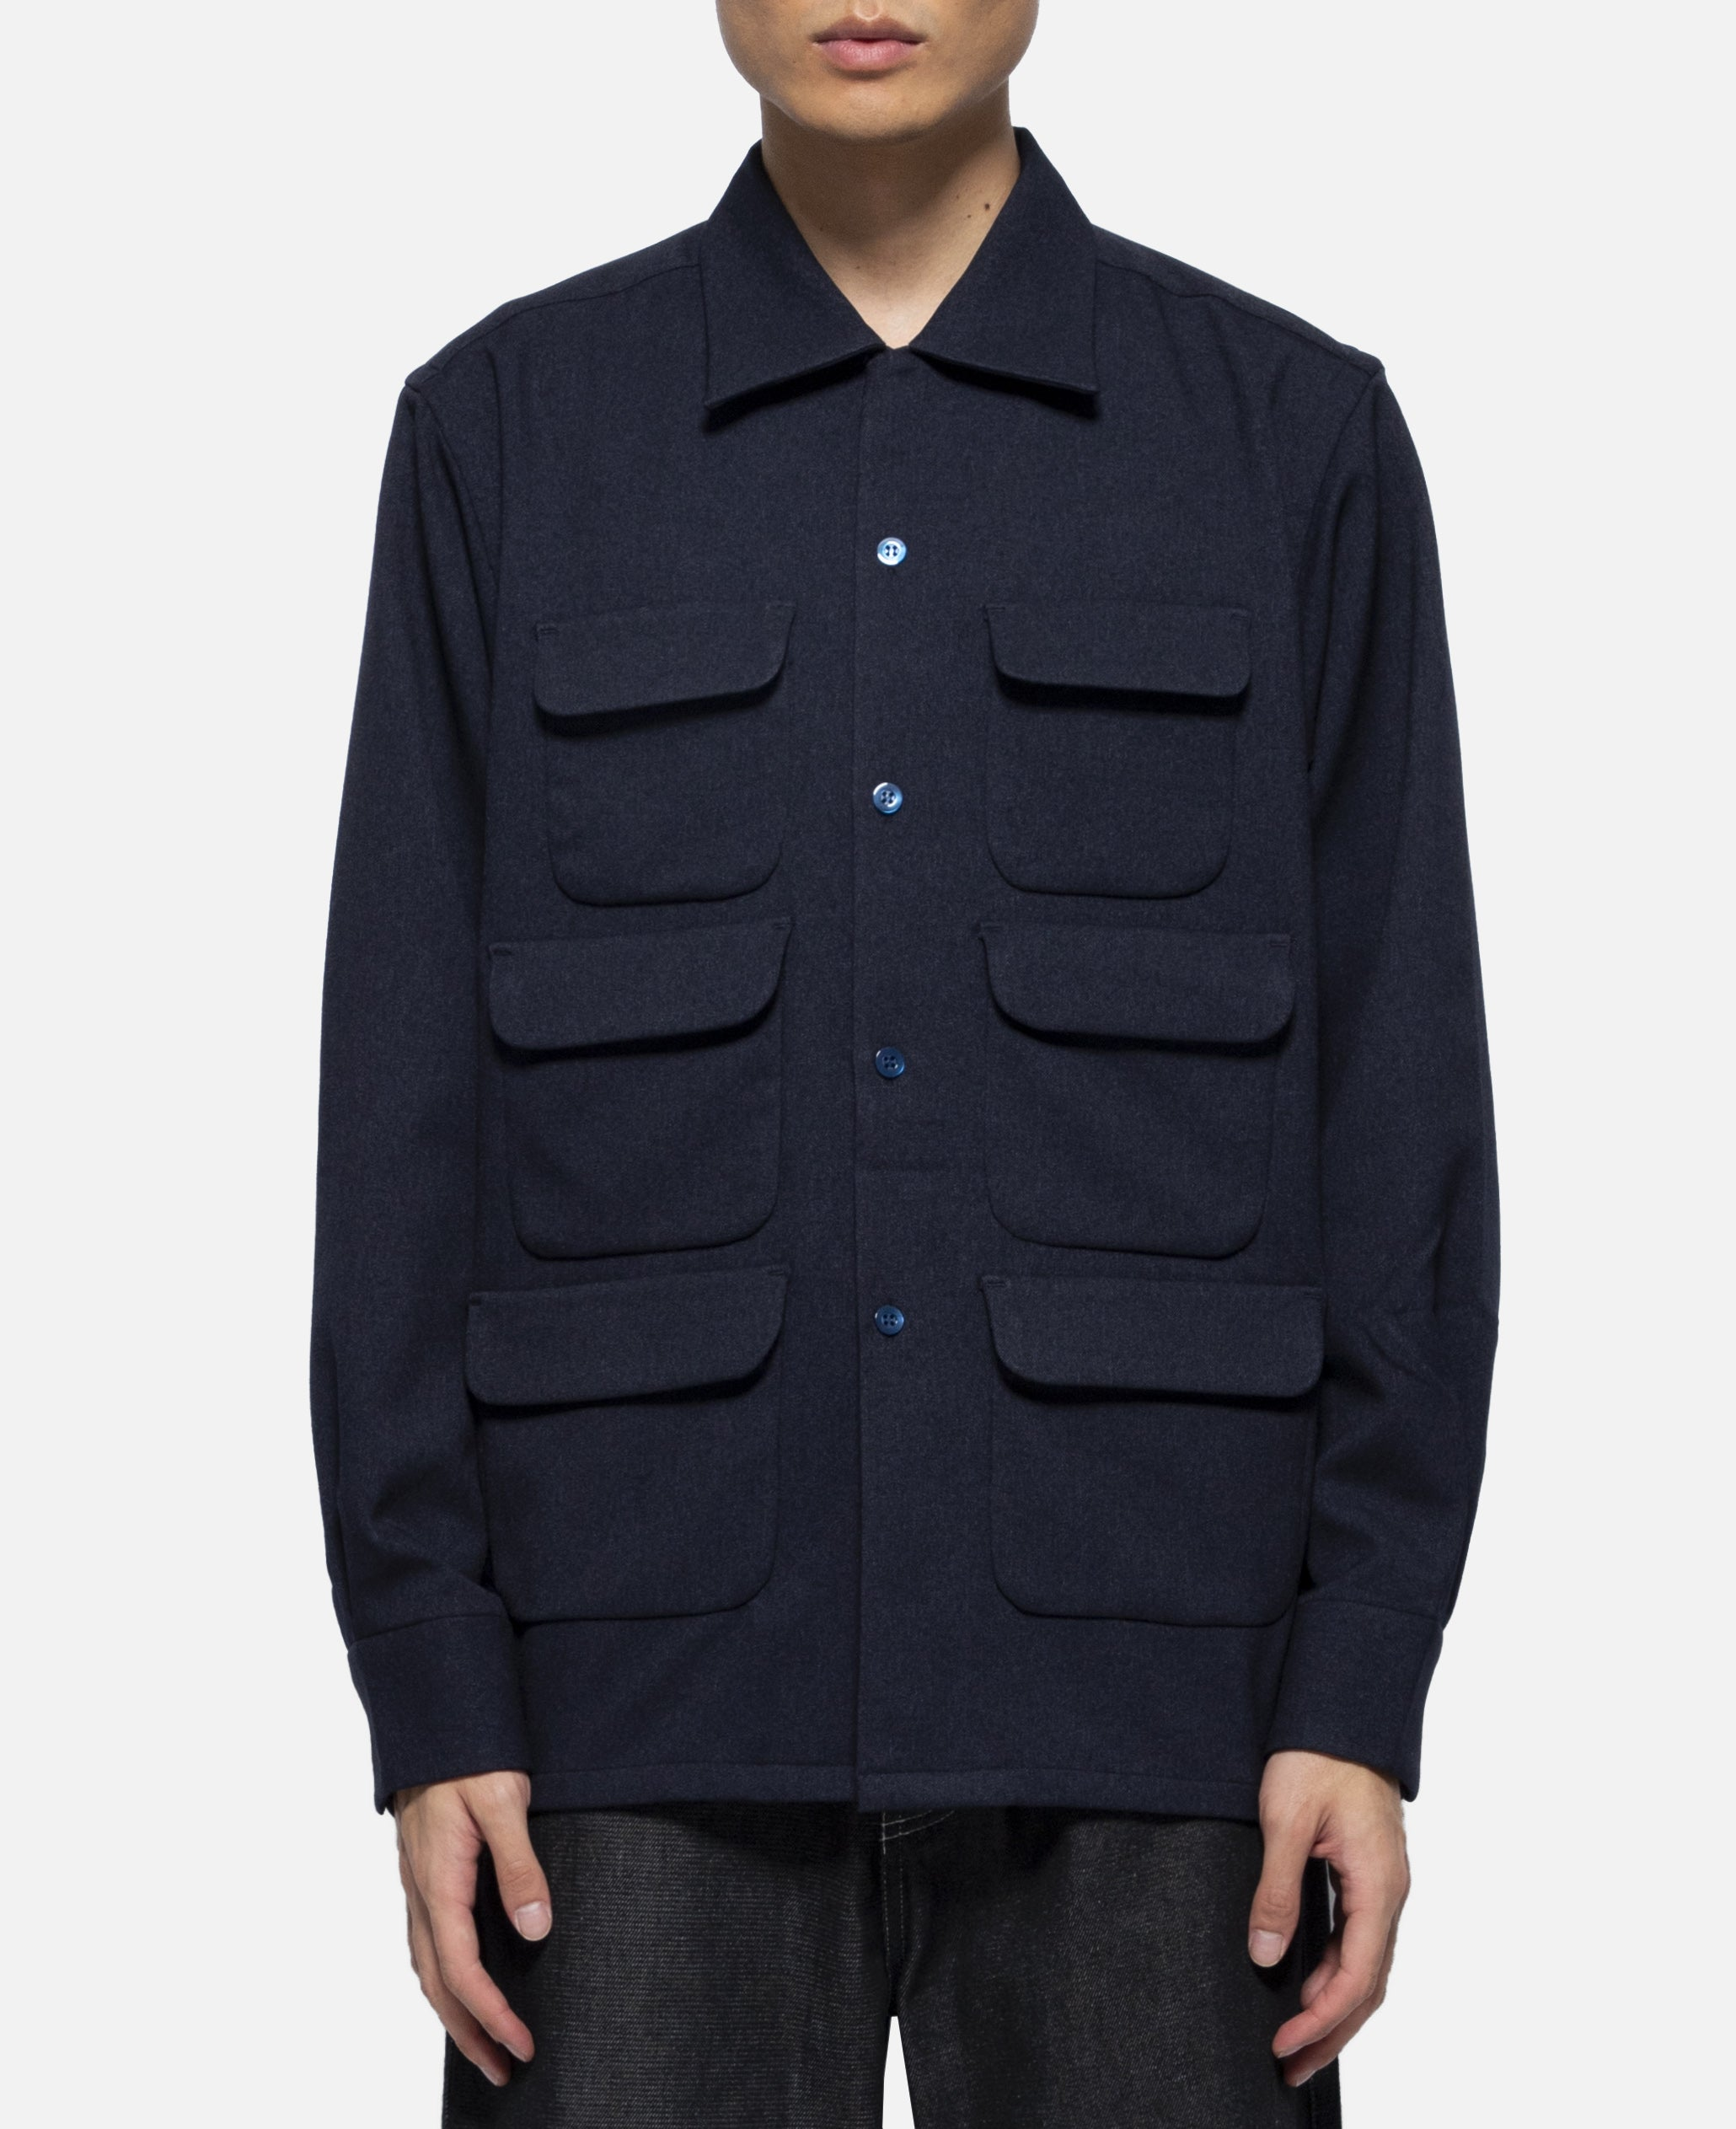 Poly Tweed 6 Pocket Classic Shirt (Navy)